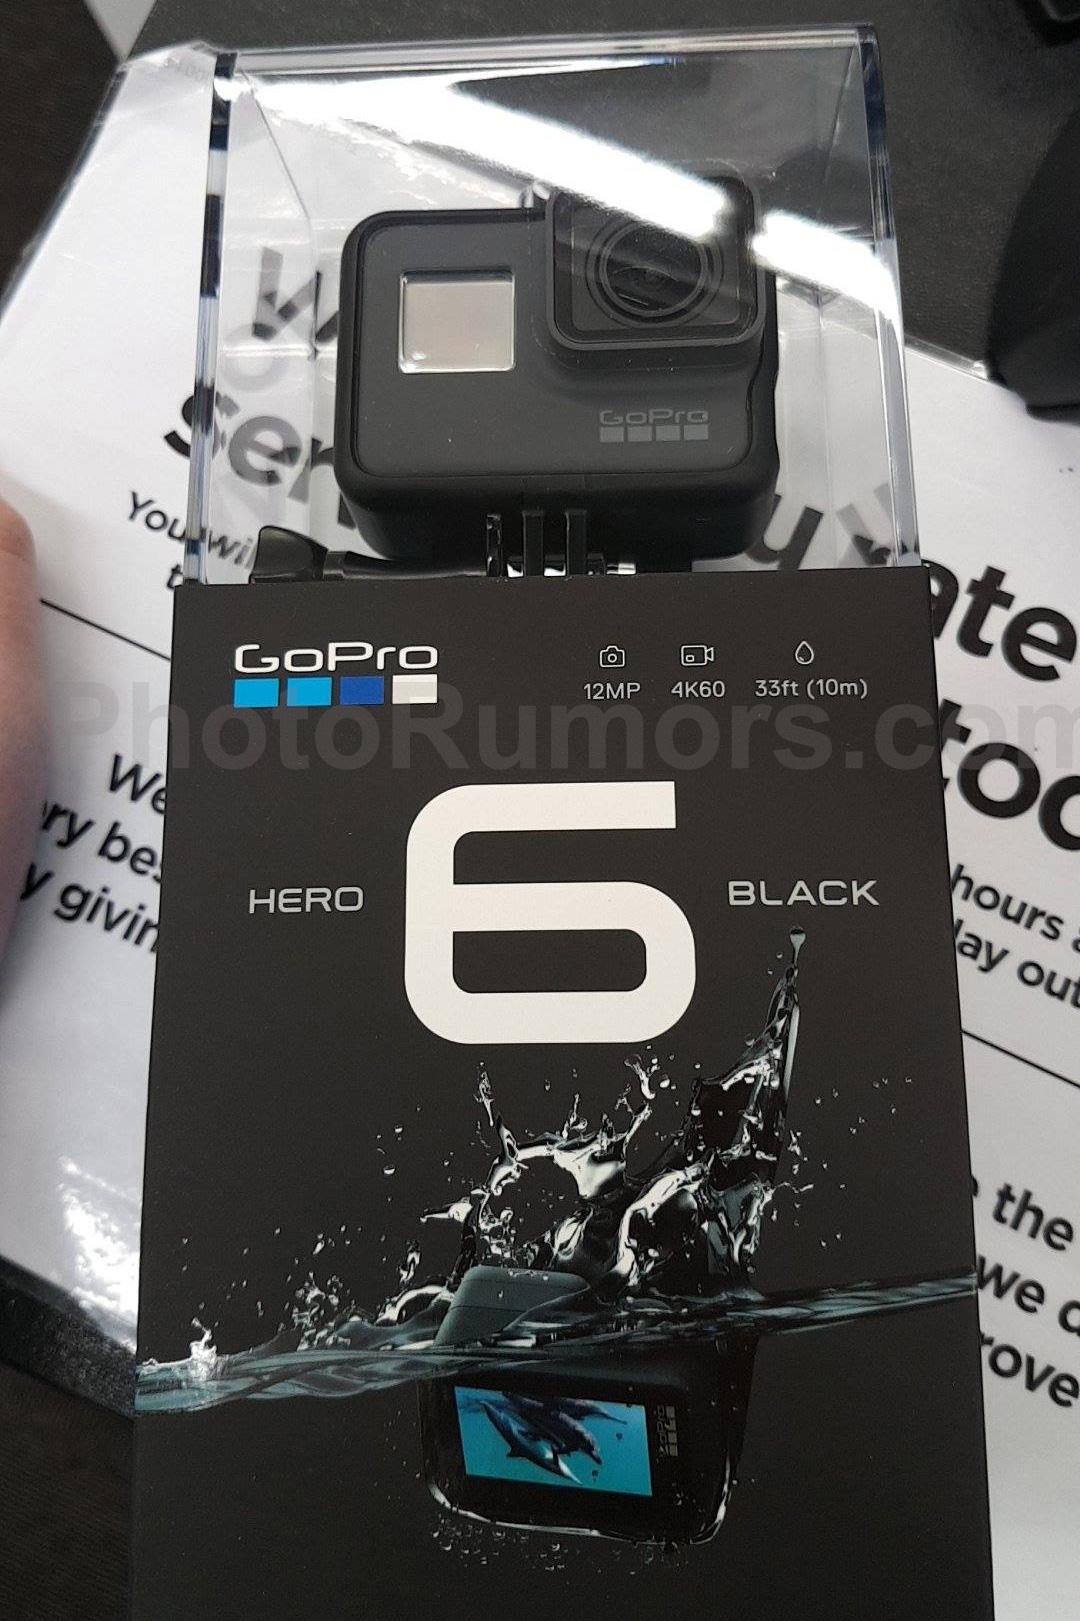 Some Additional Information On The Upcoming GoPro HERO 6 Black Camera Suggested Retail Price Incl VAT In Germany Will Be EUR569